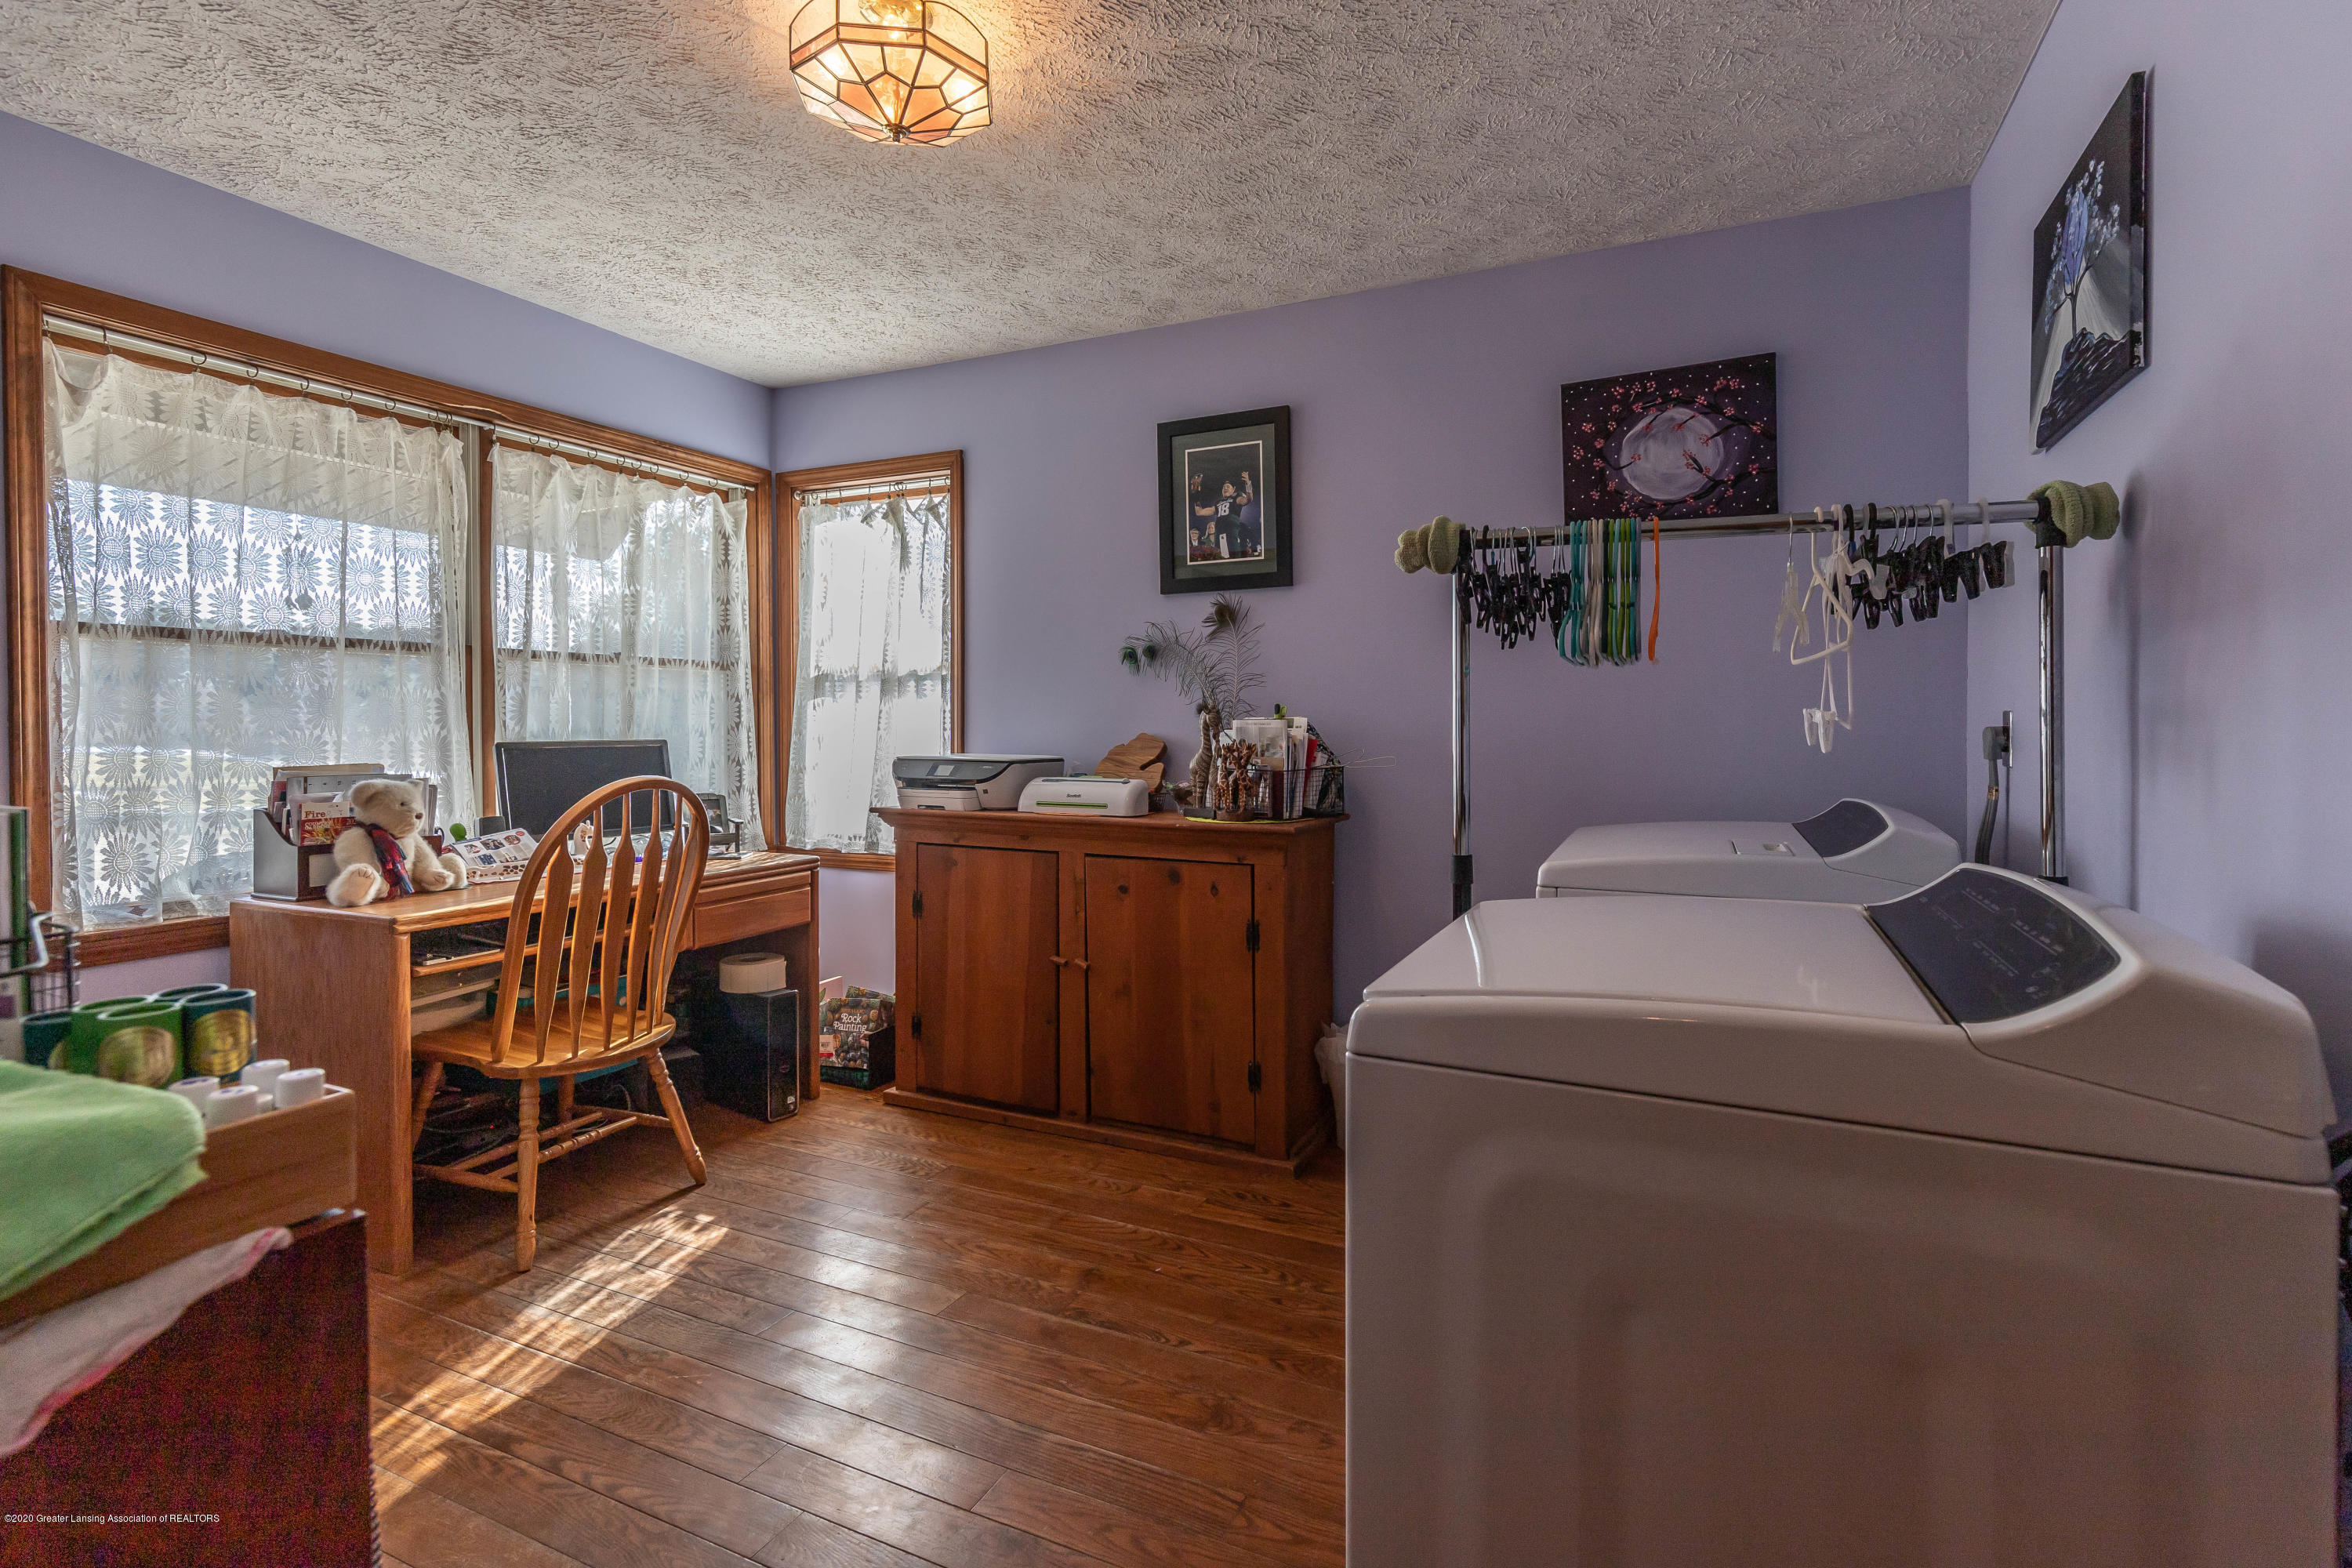 10774 S Lowell Rd - lowelllaundry2 - 15